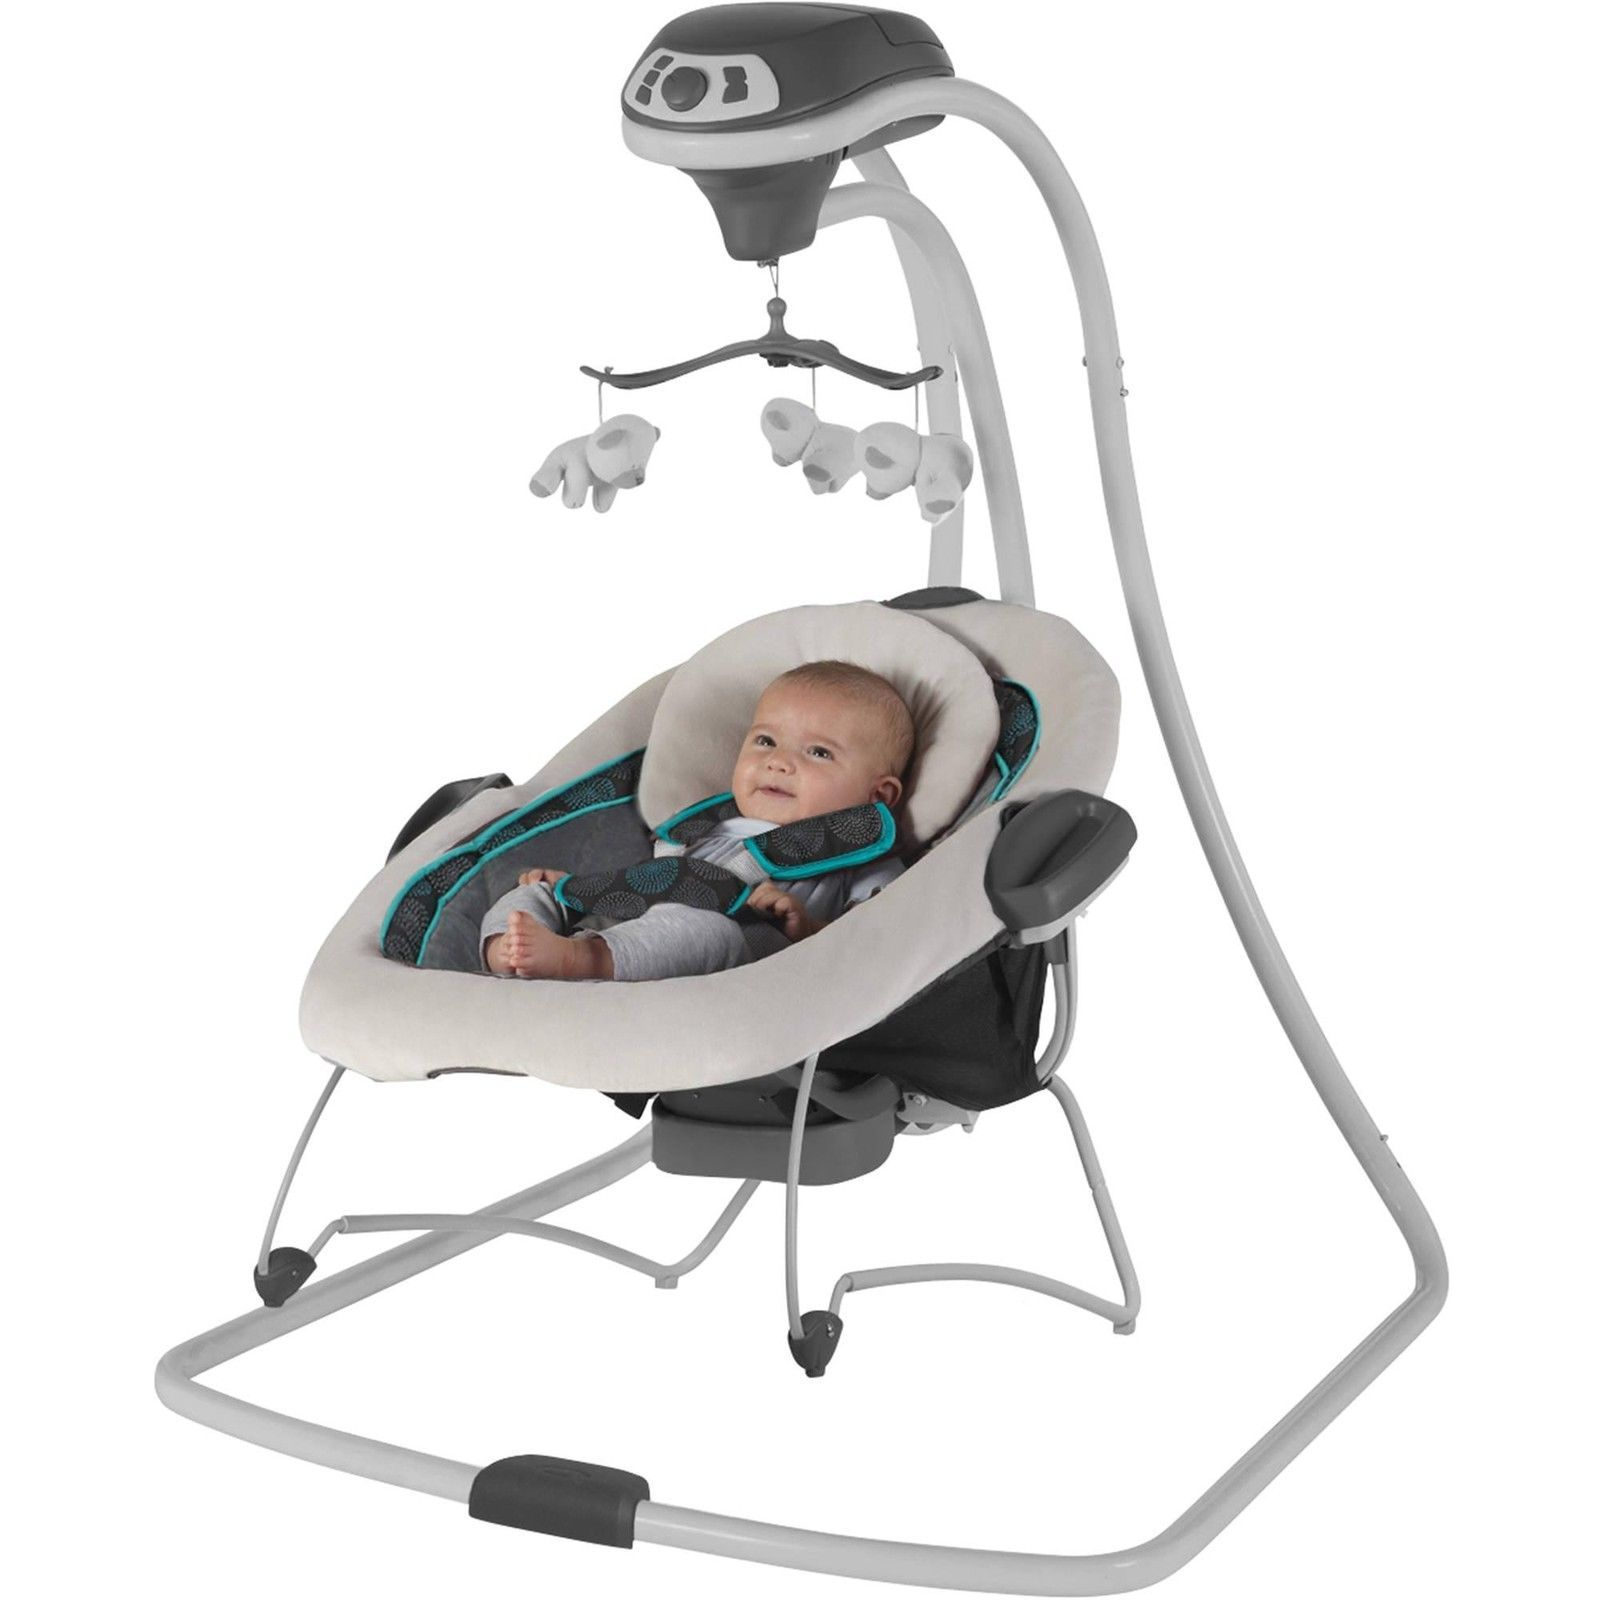 Graco Duetconnect Swing And Bouncer Bristol Baby Chair Baby Swings And Bouncers Baby Swings